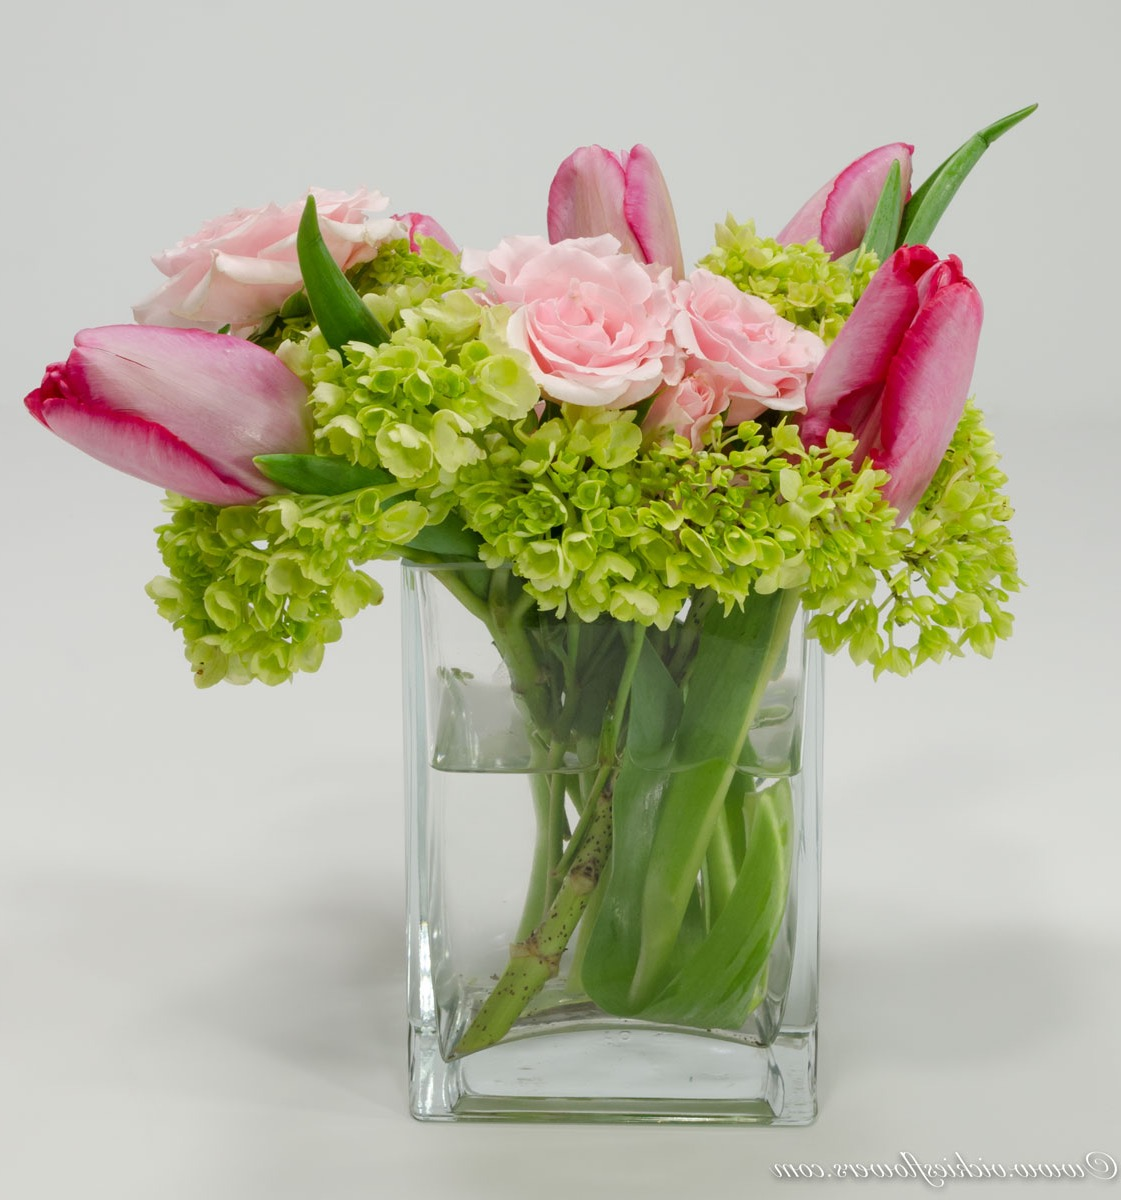 Fresh And Green Wedding Centerpiece With Pink Tulips And Pink Roses Accented With Green Hydrange In Glass Vase (Image 5 of 15)